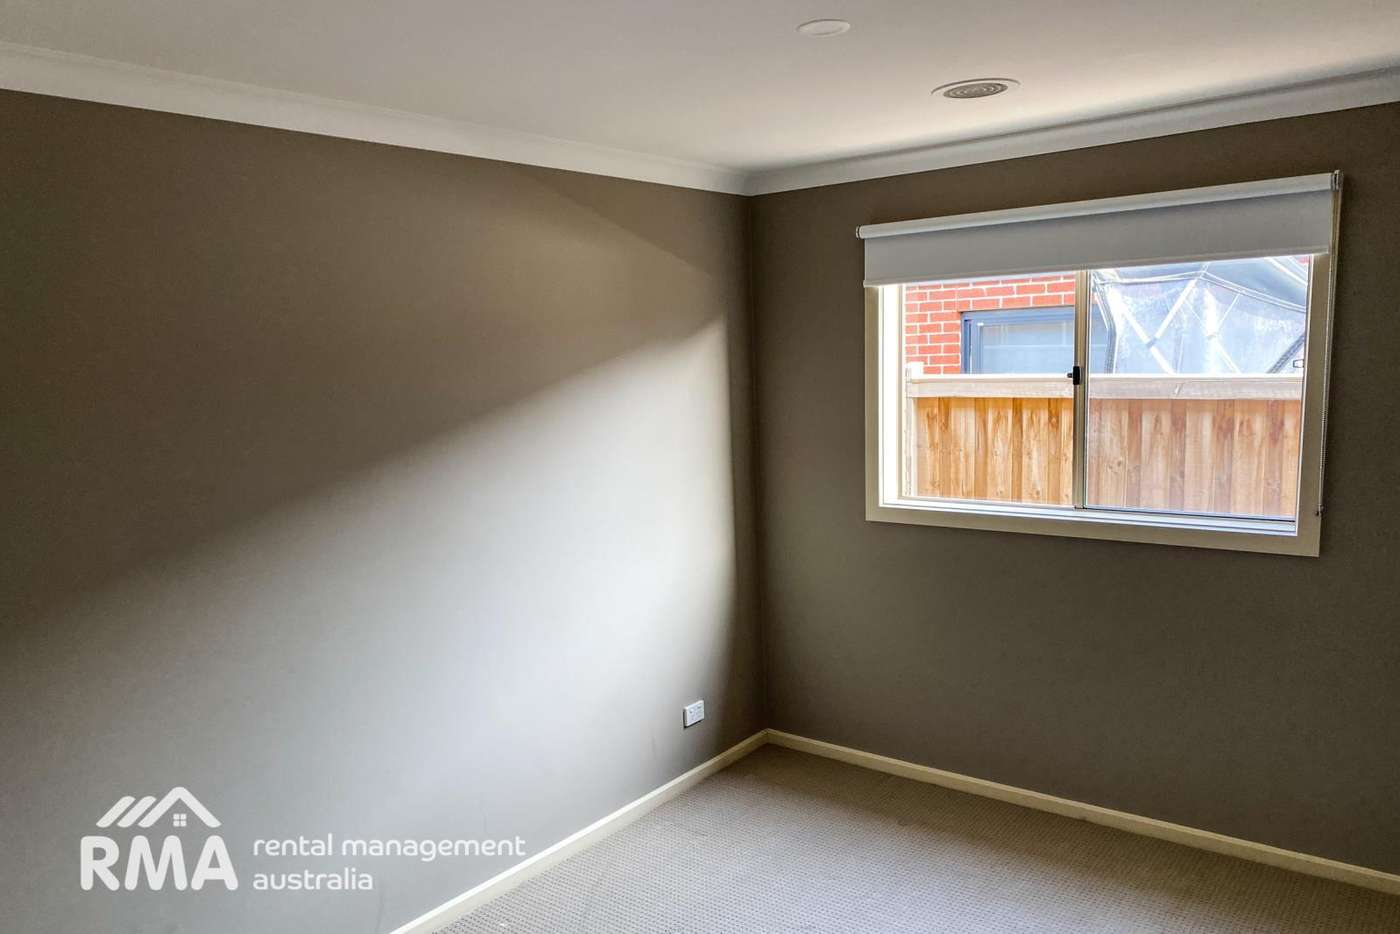 Seventh view of Homely house listing, 20 Grain Rd, Wyndham Vale VIC 3024